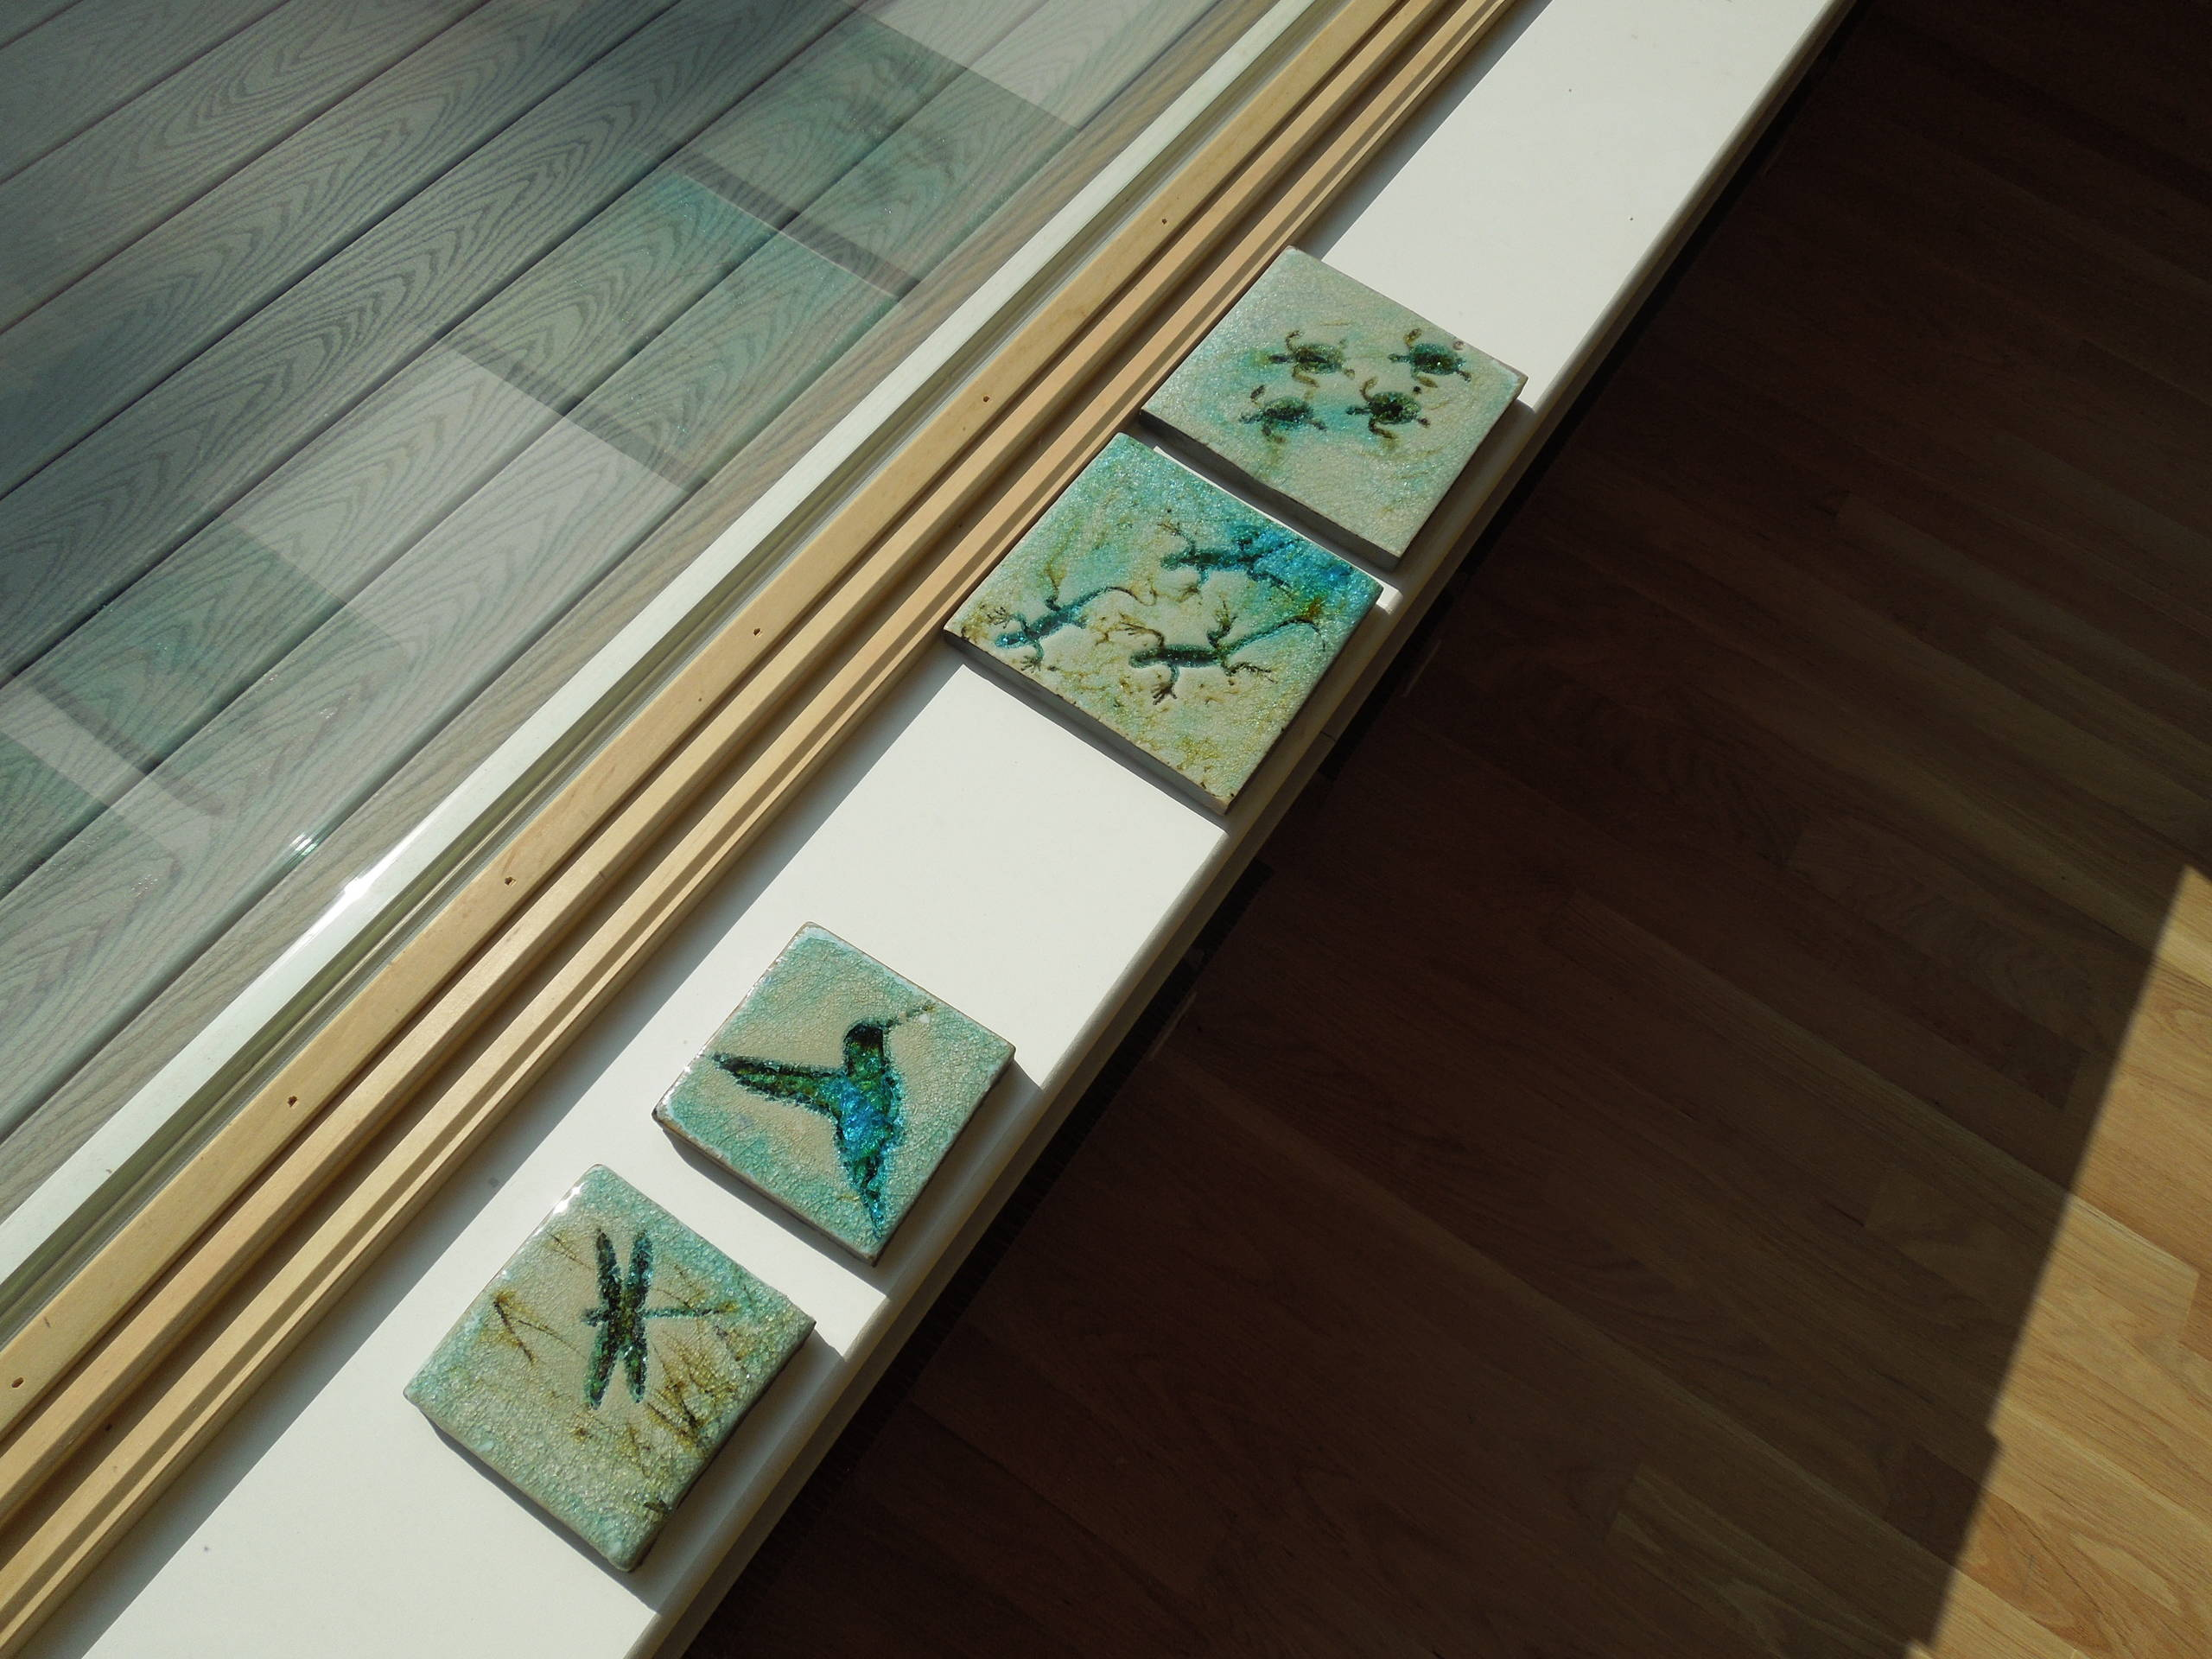 custom tiles waiting to be installed